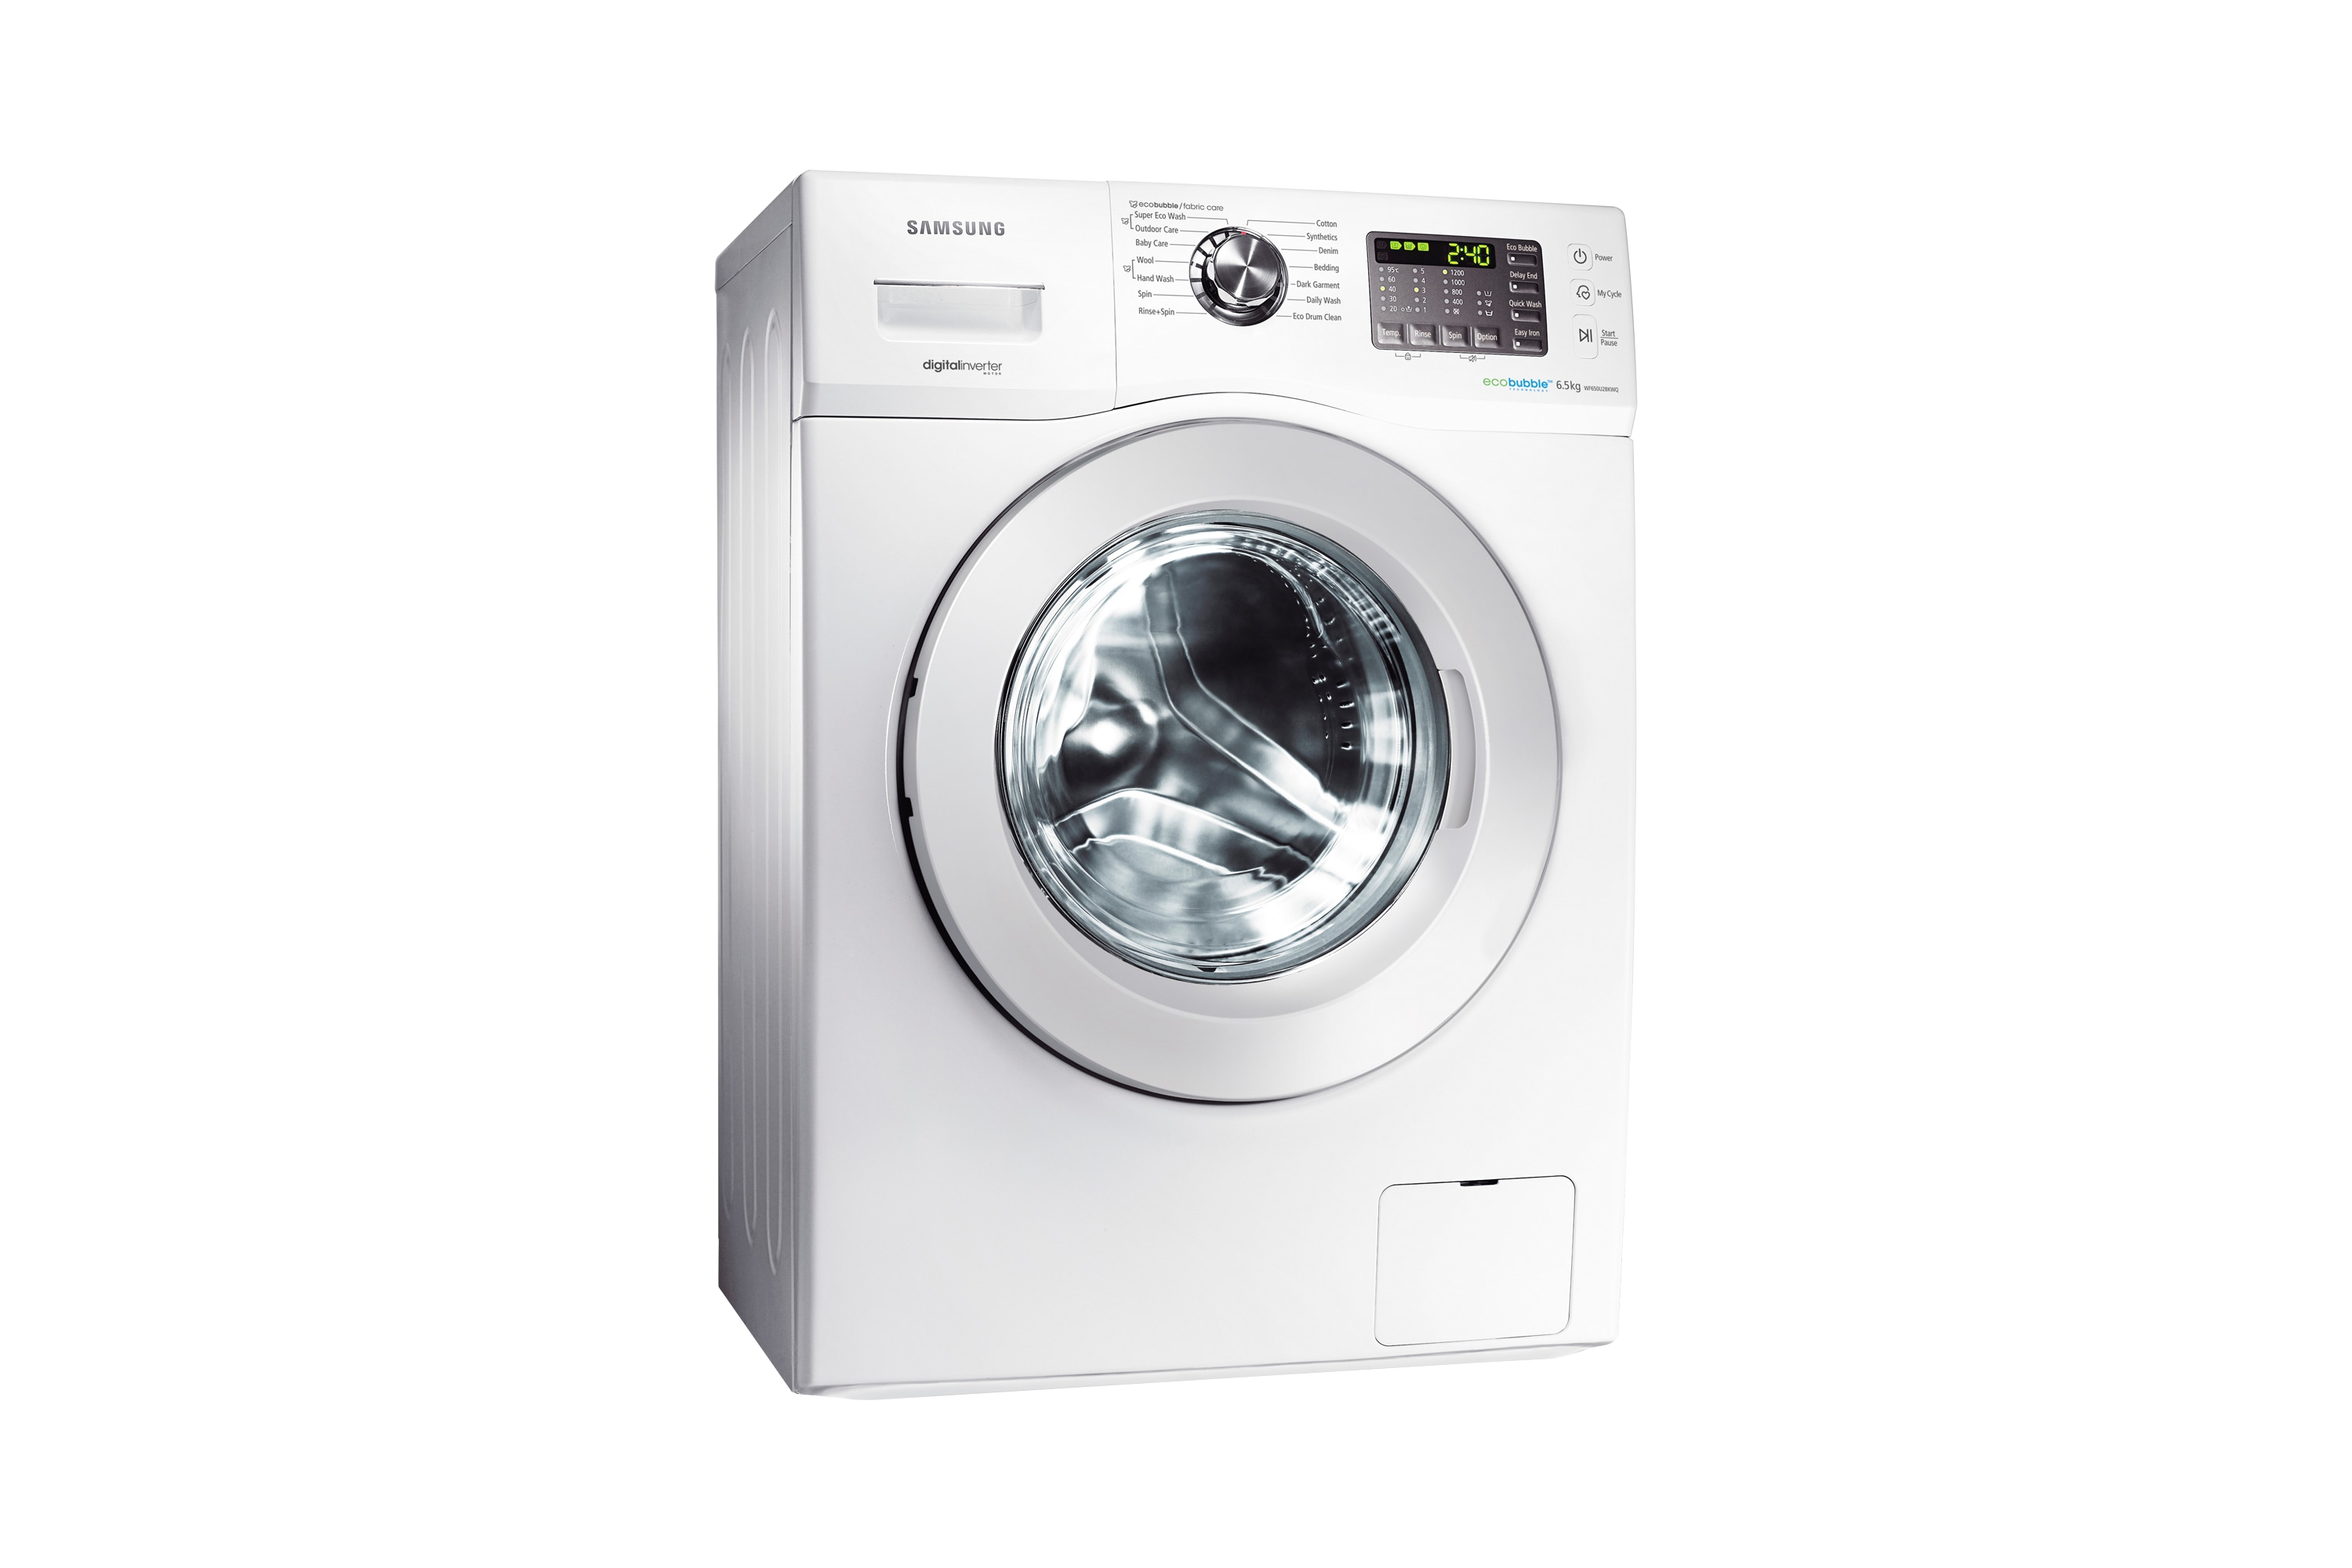 Samsung 6kg Automatic Washing Machine Price Specs Features